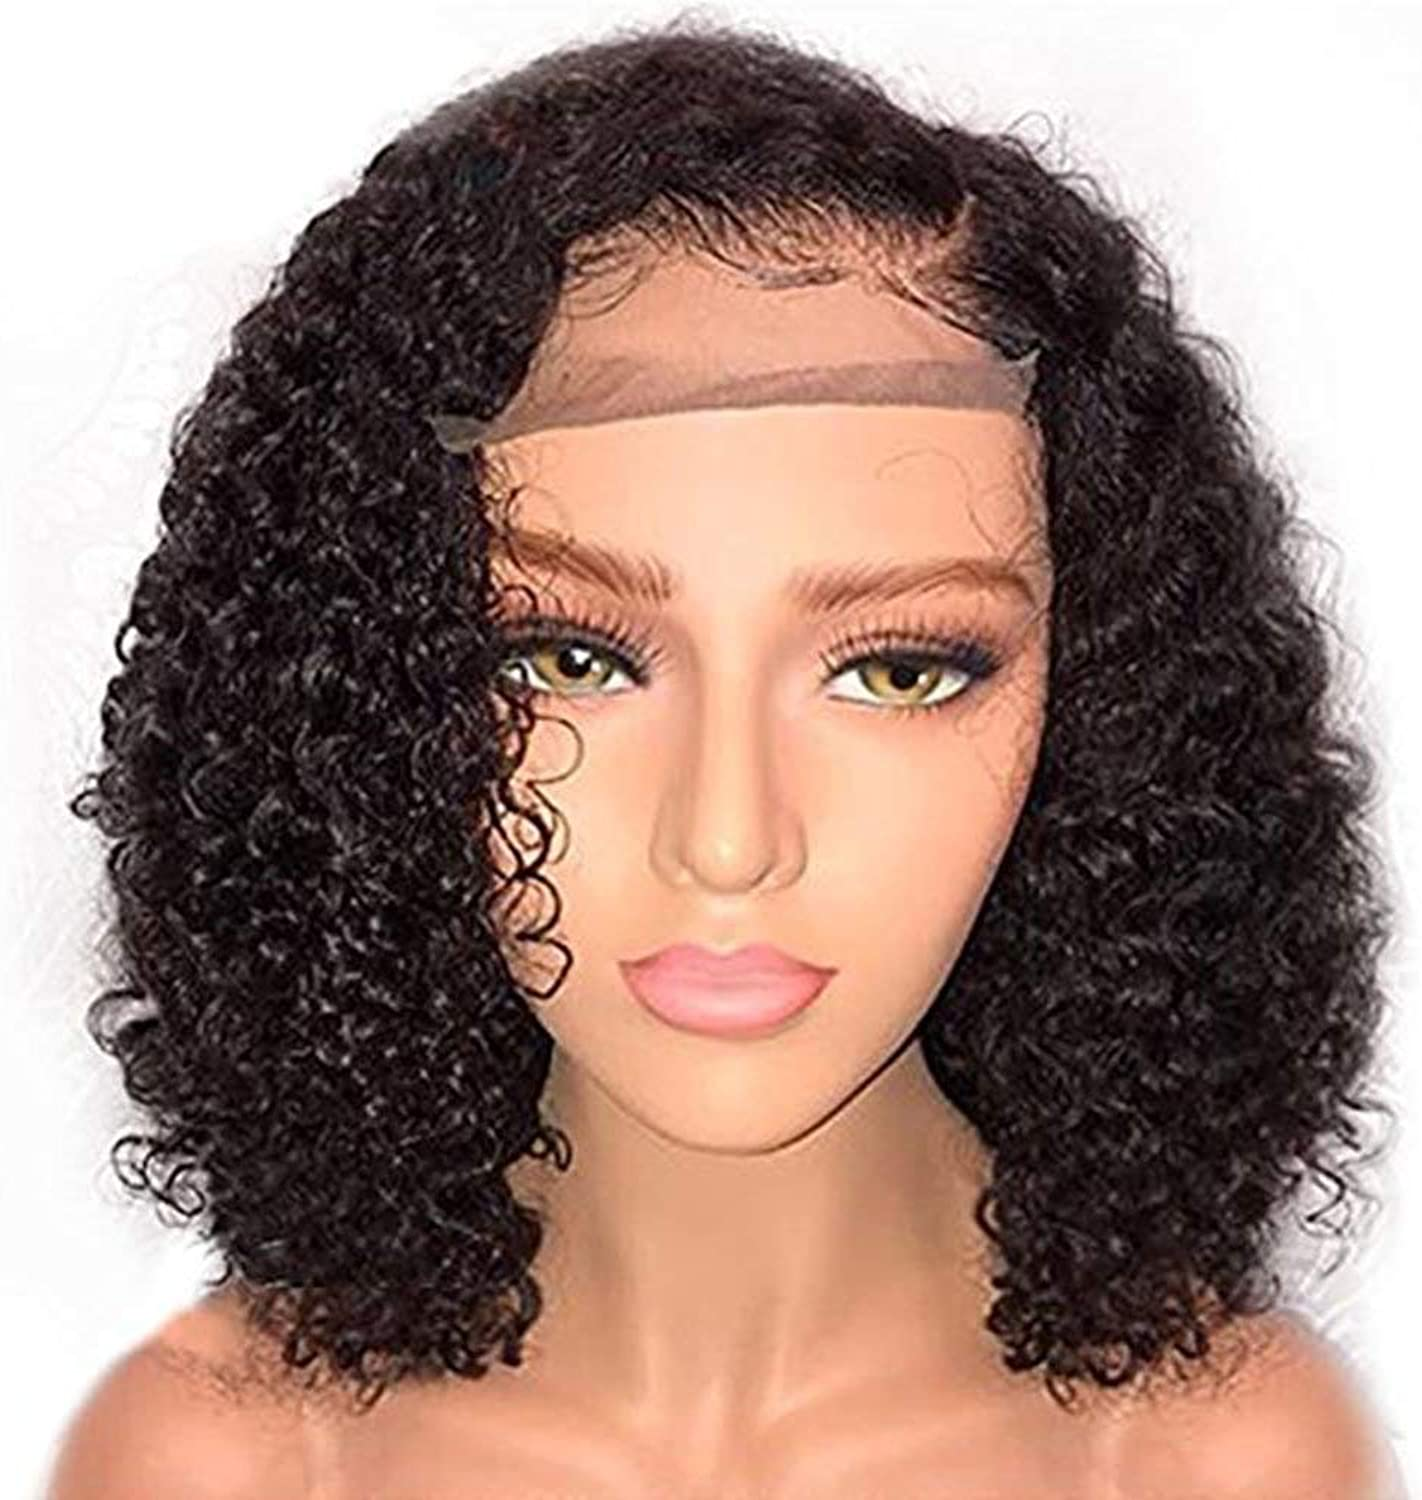 Short Curly Kinky Wigs for Black Women Fluffy Wavy Black Synthetic Hair Wig Natural Looking Wigs Heat Resistant Wigs with Wig Cap 14''